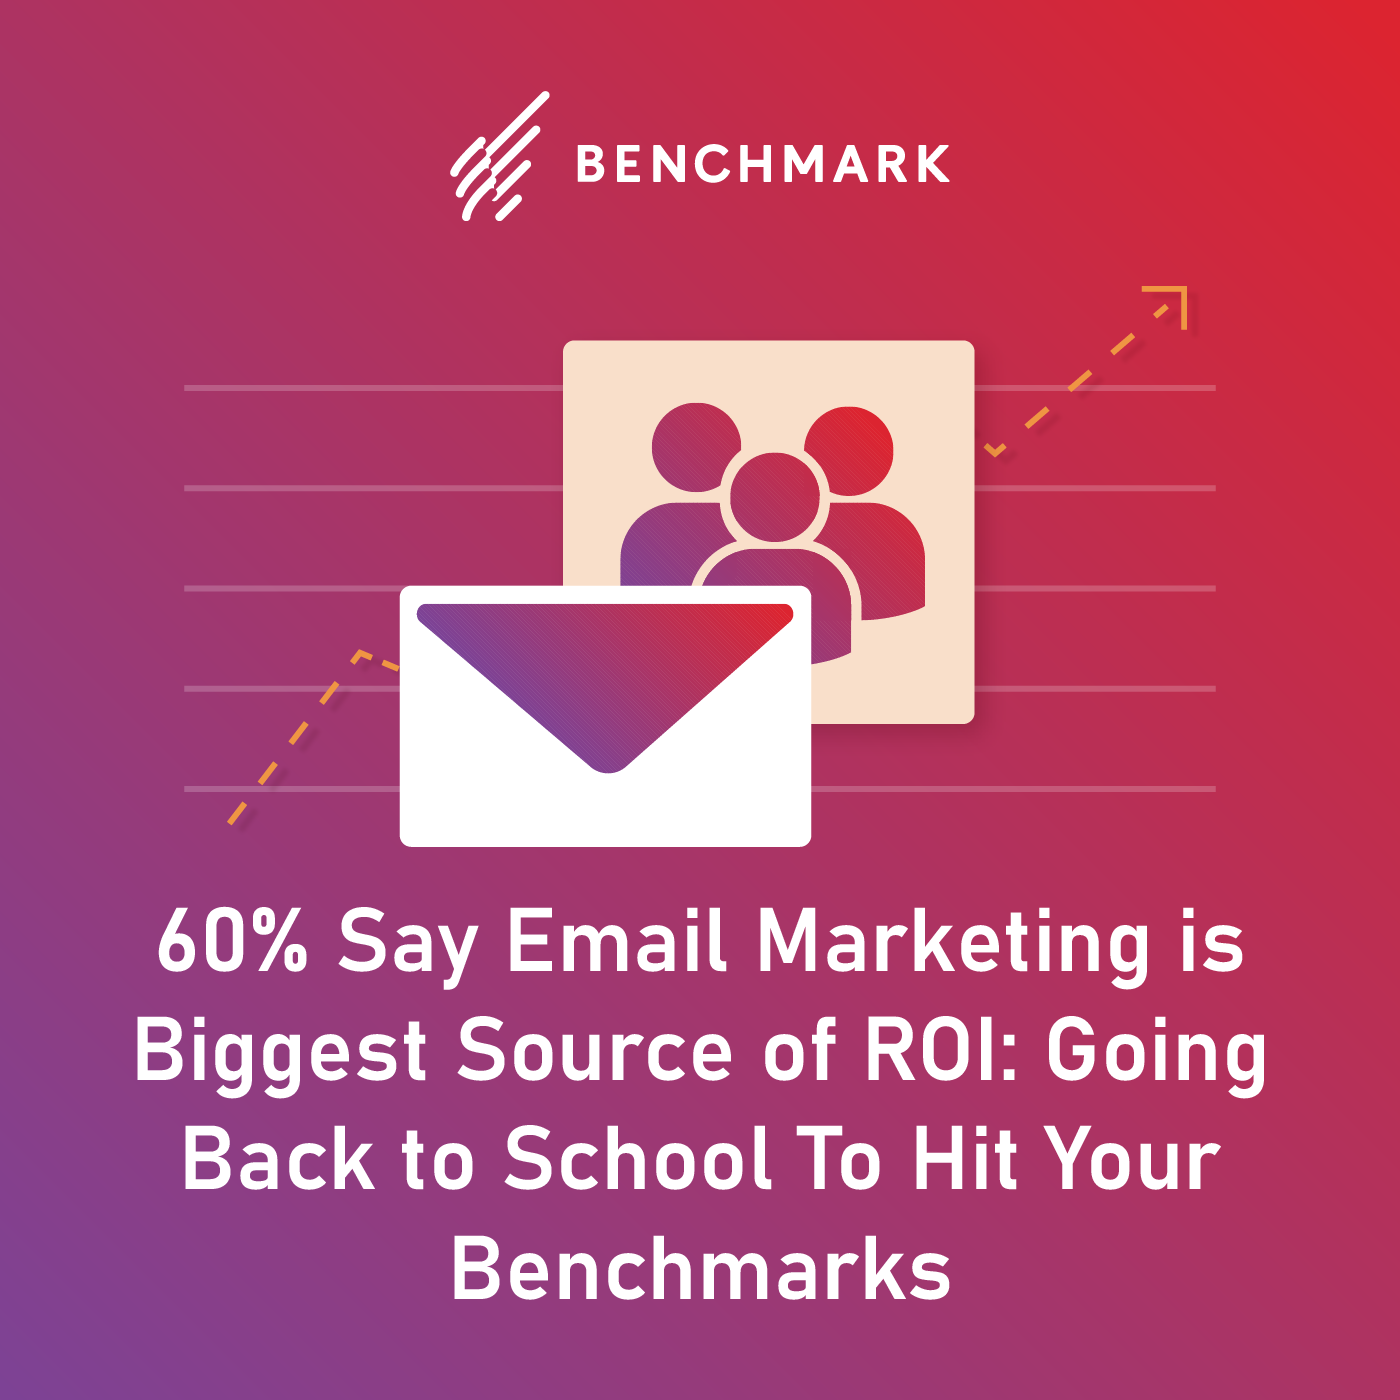 60% Say Email Marketing is Biggest Source of ROI: Going Back to School To Hit Your Benchmarks